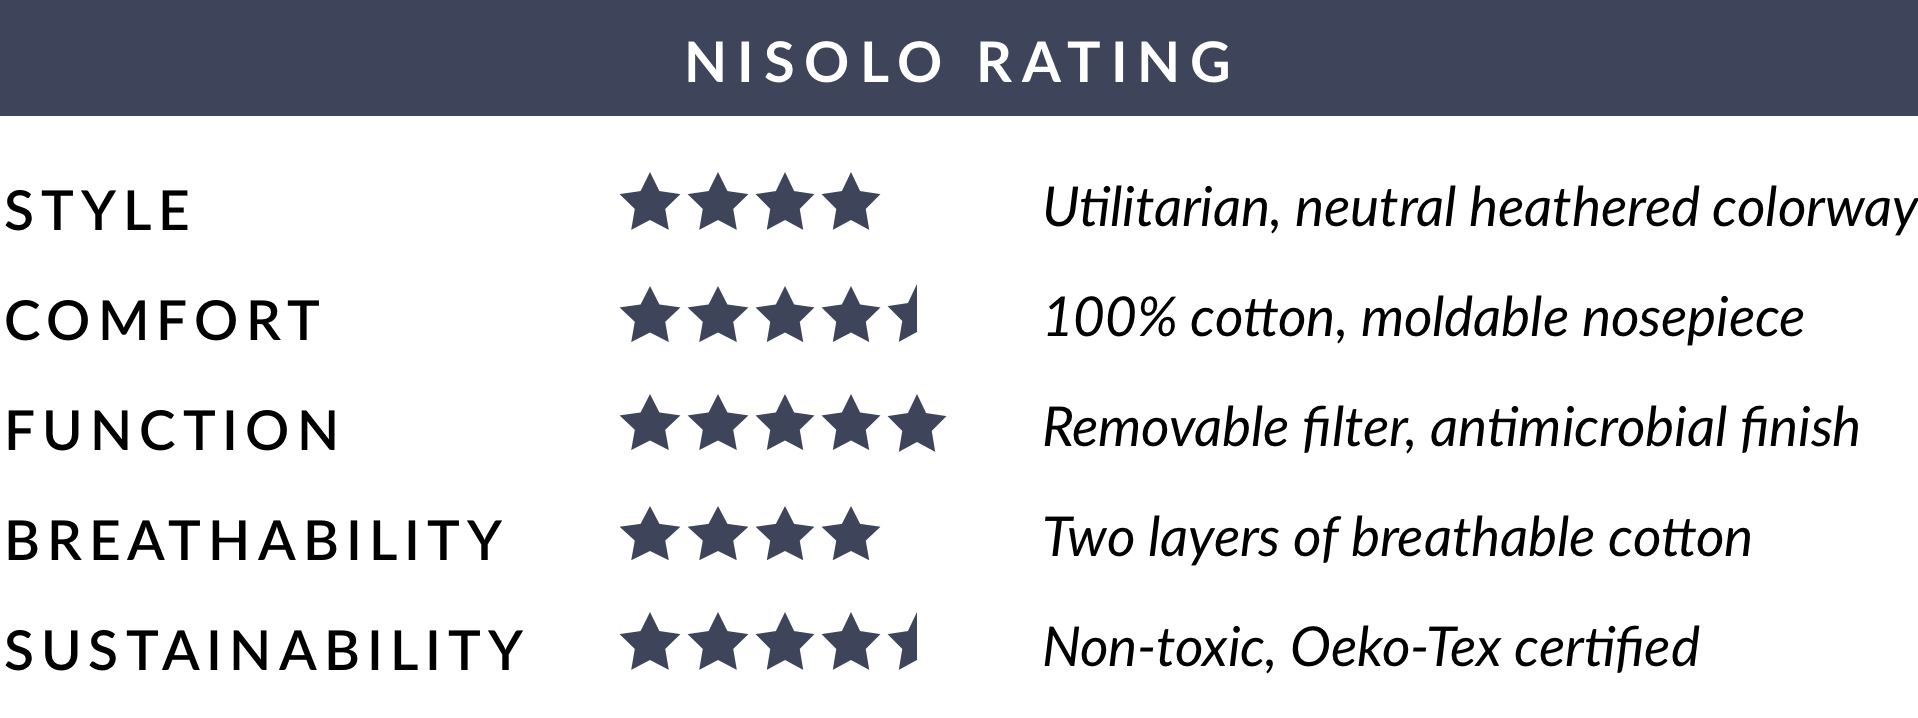 Nisolo Rating of Proper Cloth Everyday Filtered Mask - Grey - Average of 4.4 out of 5 stars